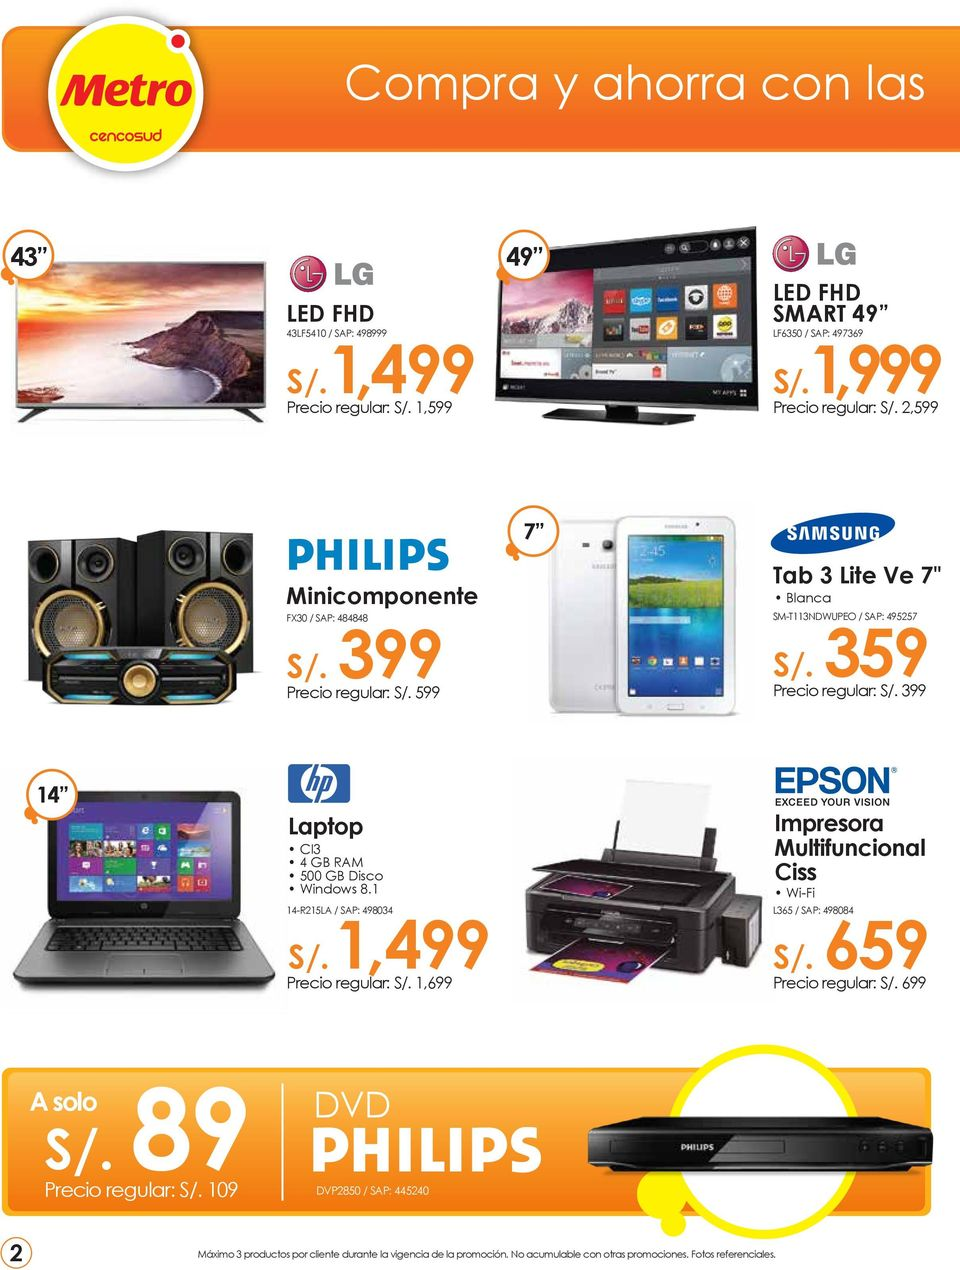 359 Precio regular: S/. 399 14 14 Laptop CI3 4 GB RAM 500 GB Disco Windows 8.1 14-R215LA / SAP: 498034 S/. 1,499 Precio regular: S/. 1,699 Laptop CI3 4 GB RAM 500 GB Disco Windows 8.